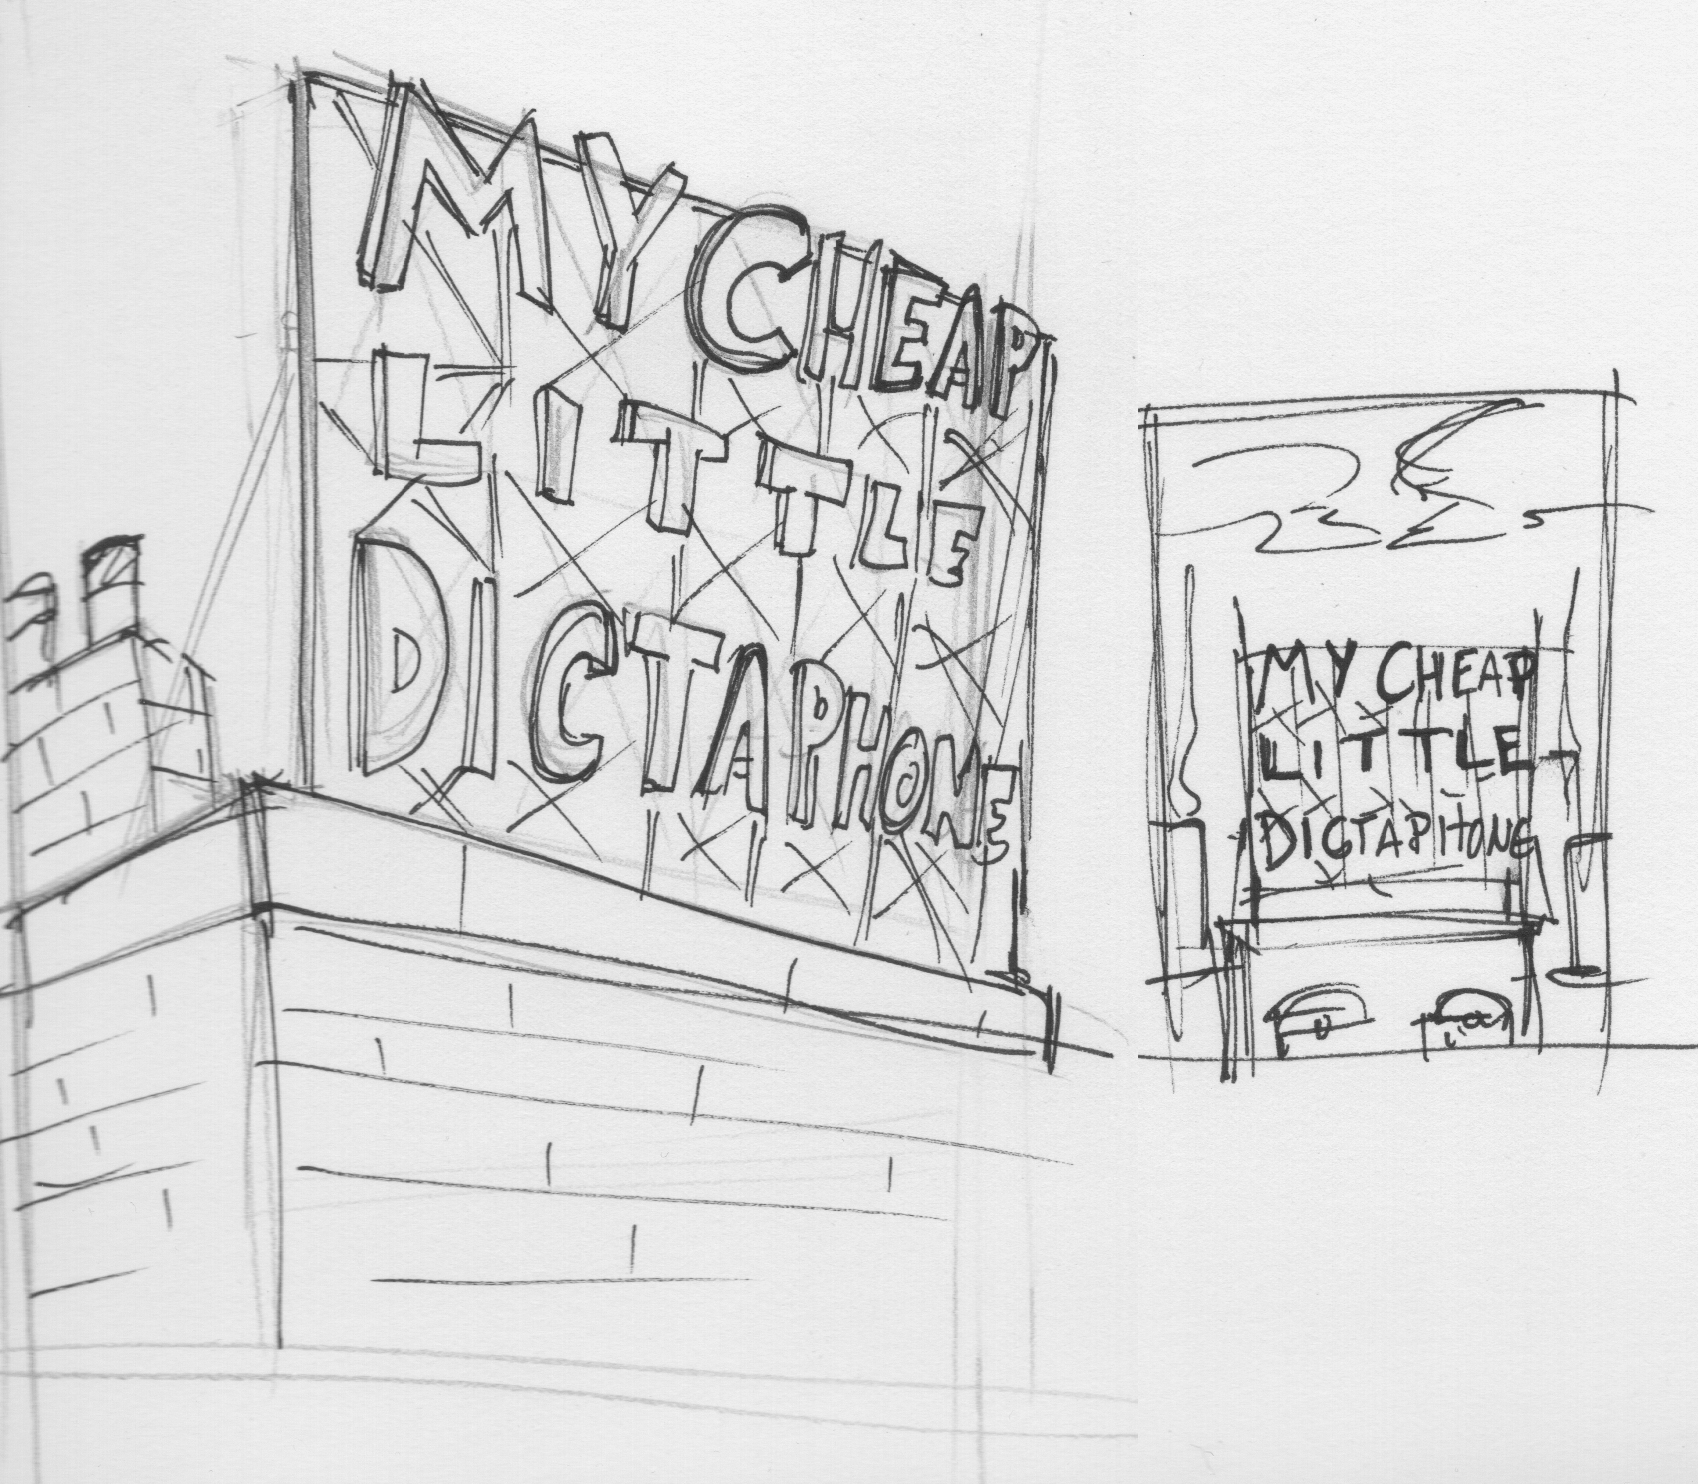 My Little Cheap Dictaphone - image 3 - student project